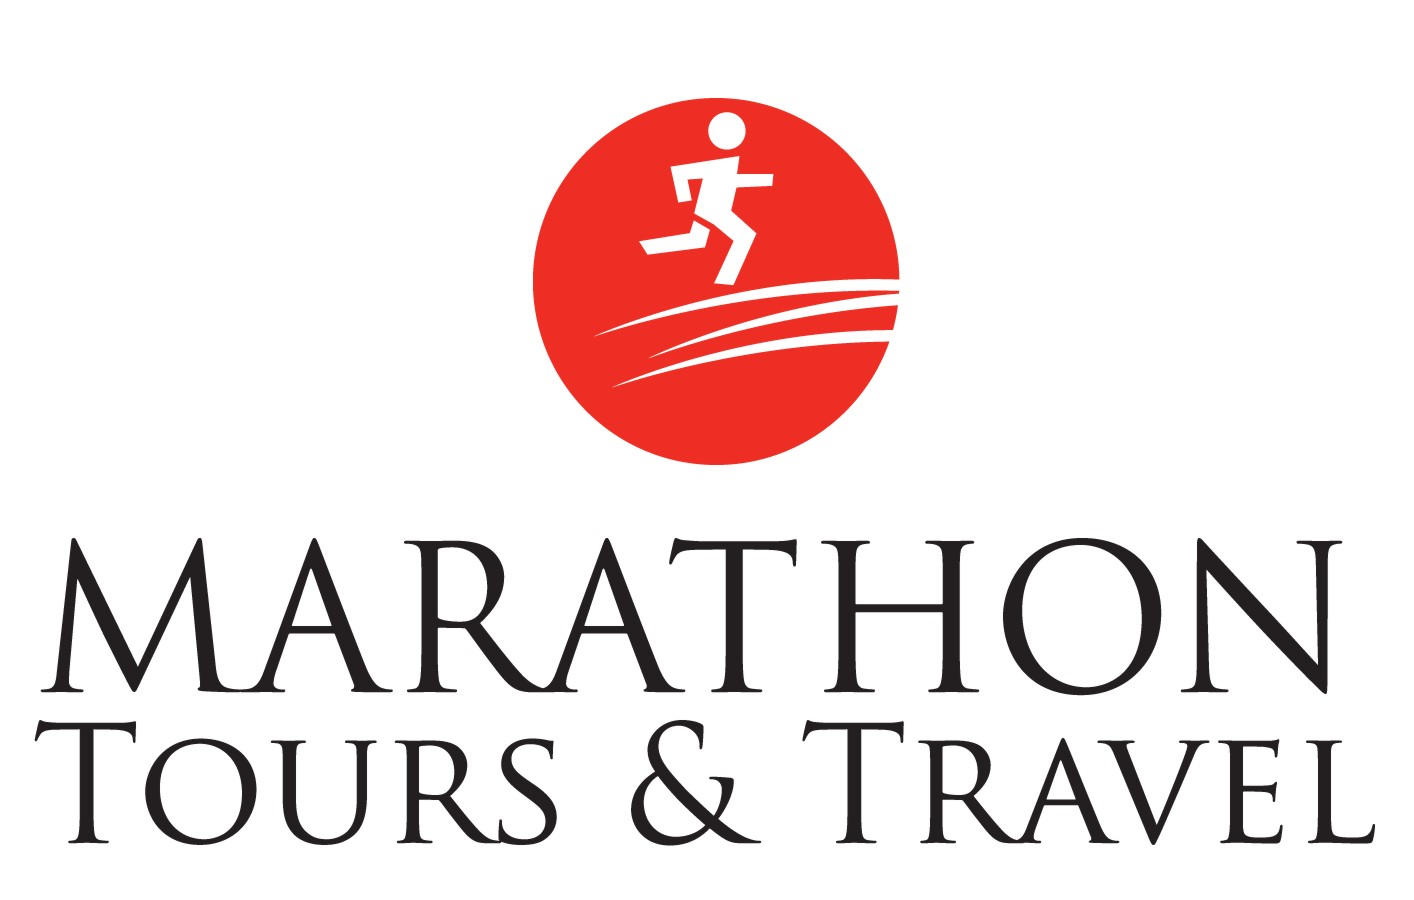 Marathon Tours Logo International Travel Patagonian International Marathon